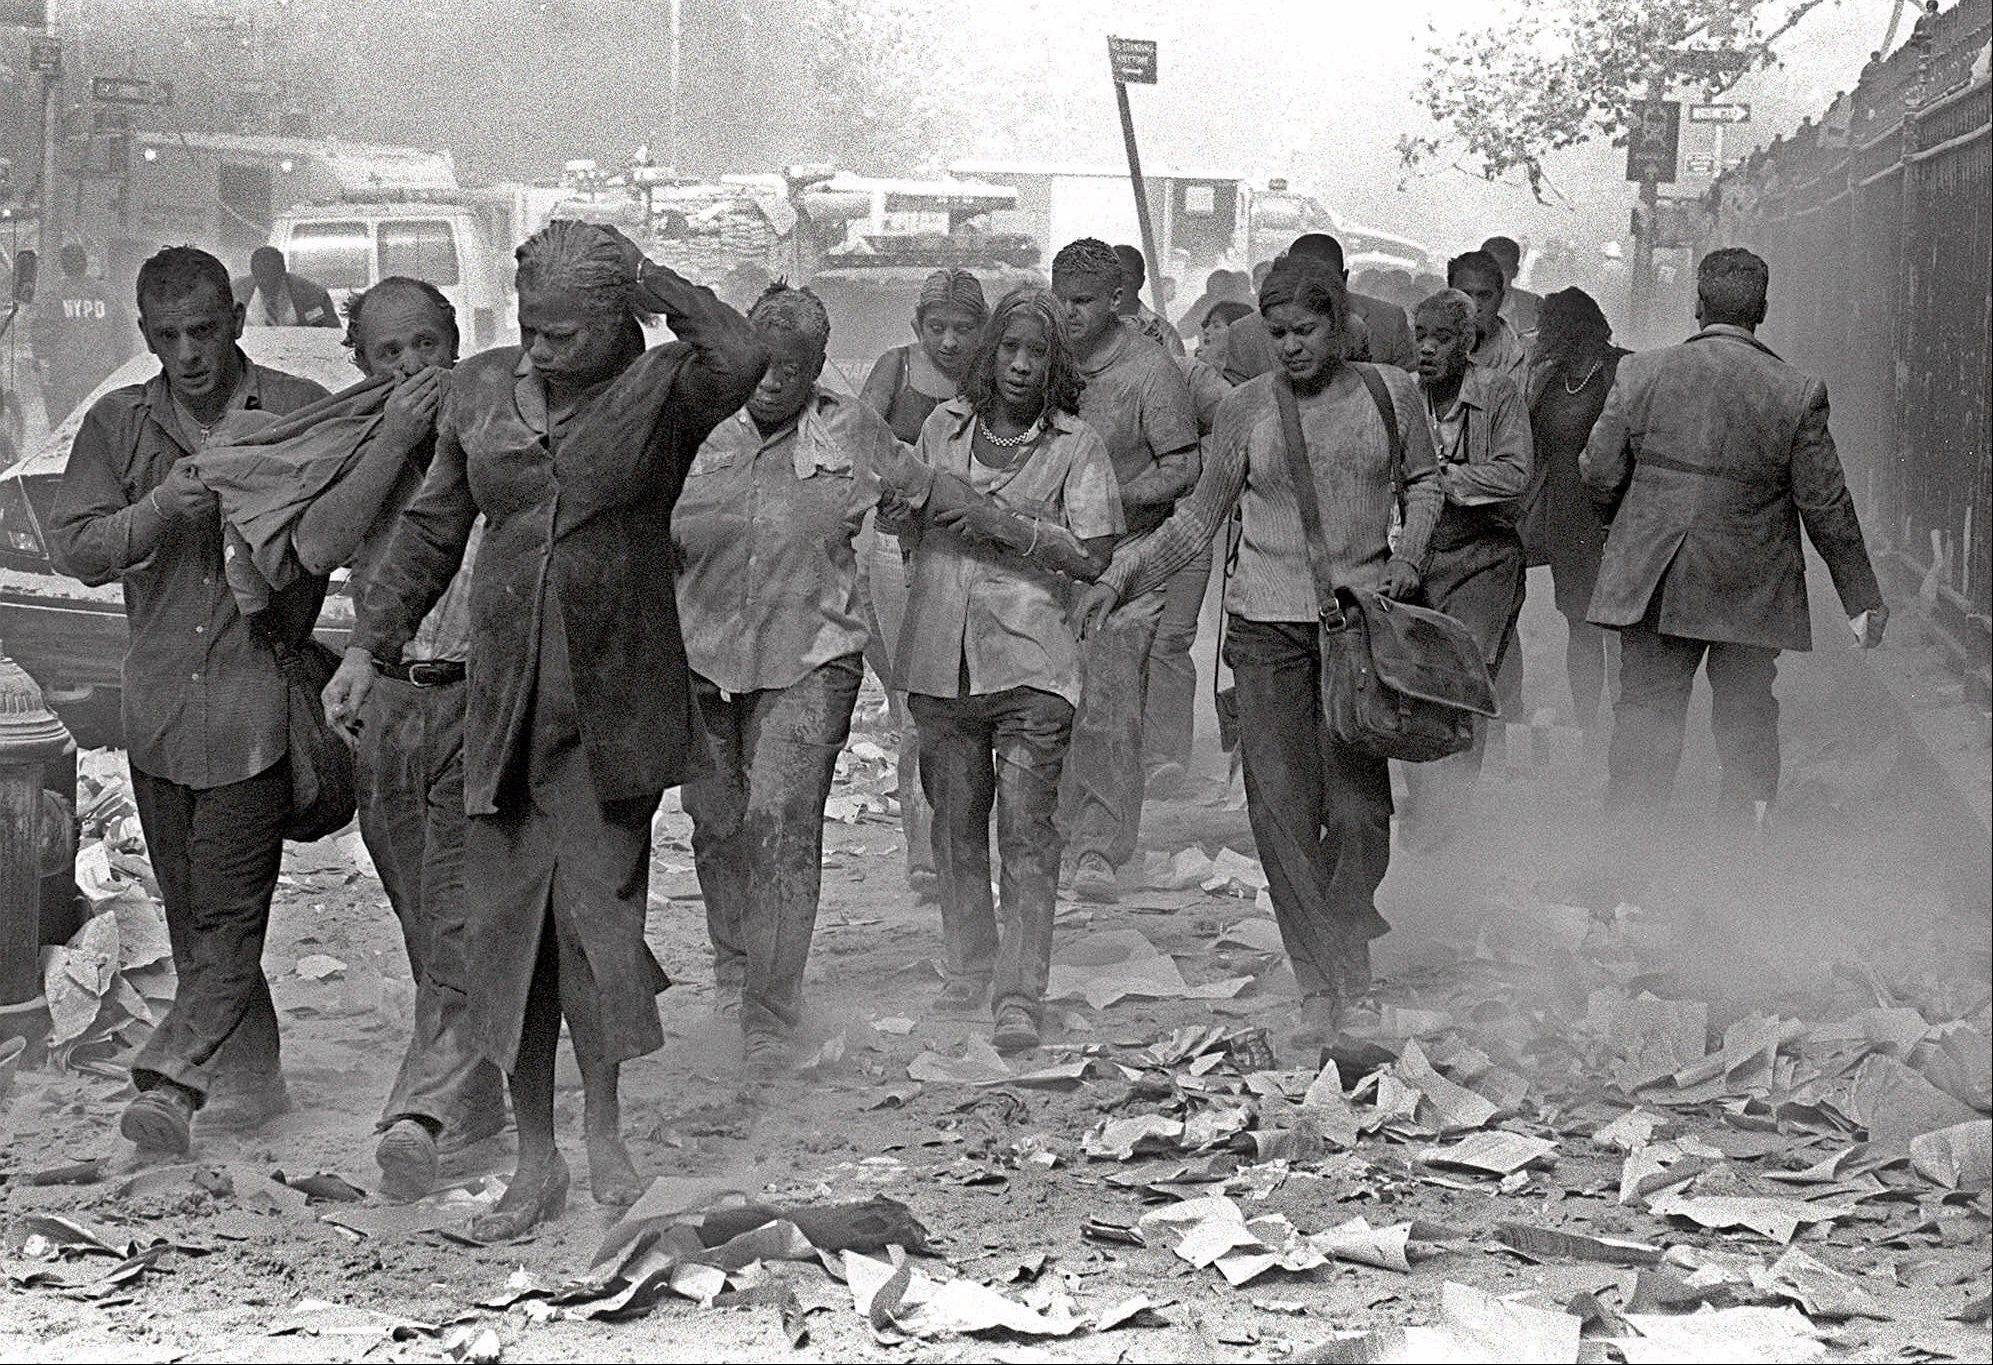 Gulnara Samoilova shot this photo of people covered in dust walking over debris near the World Trade Center in New York on Sept. 11, 2001.